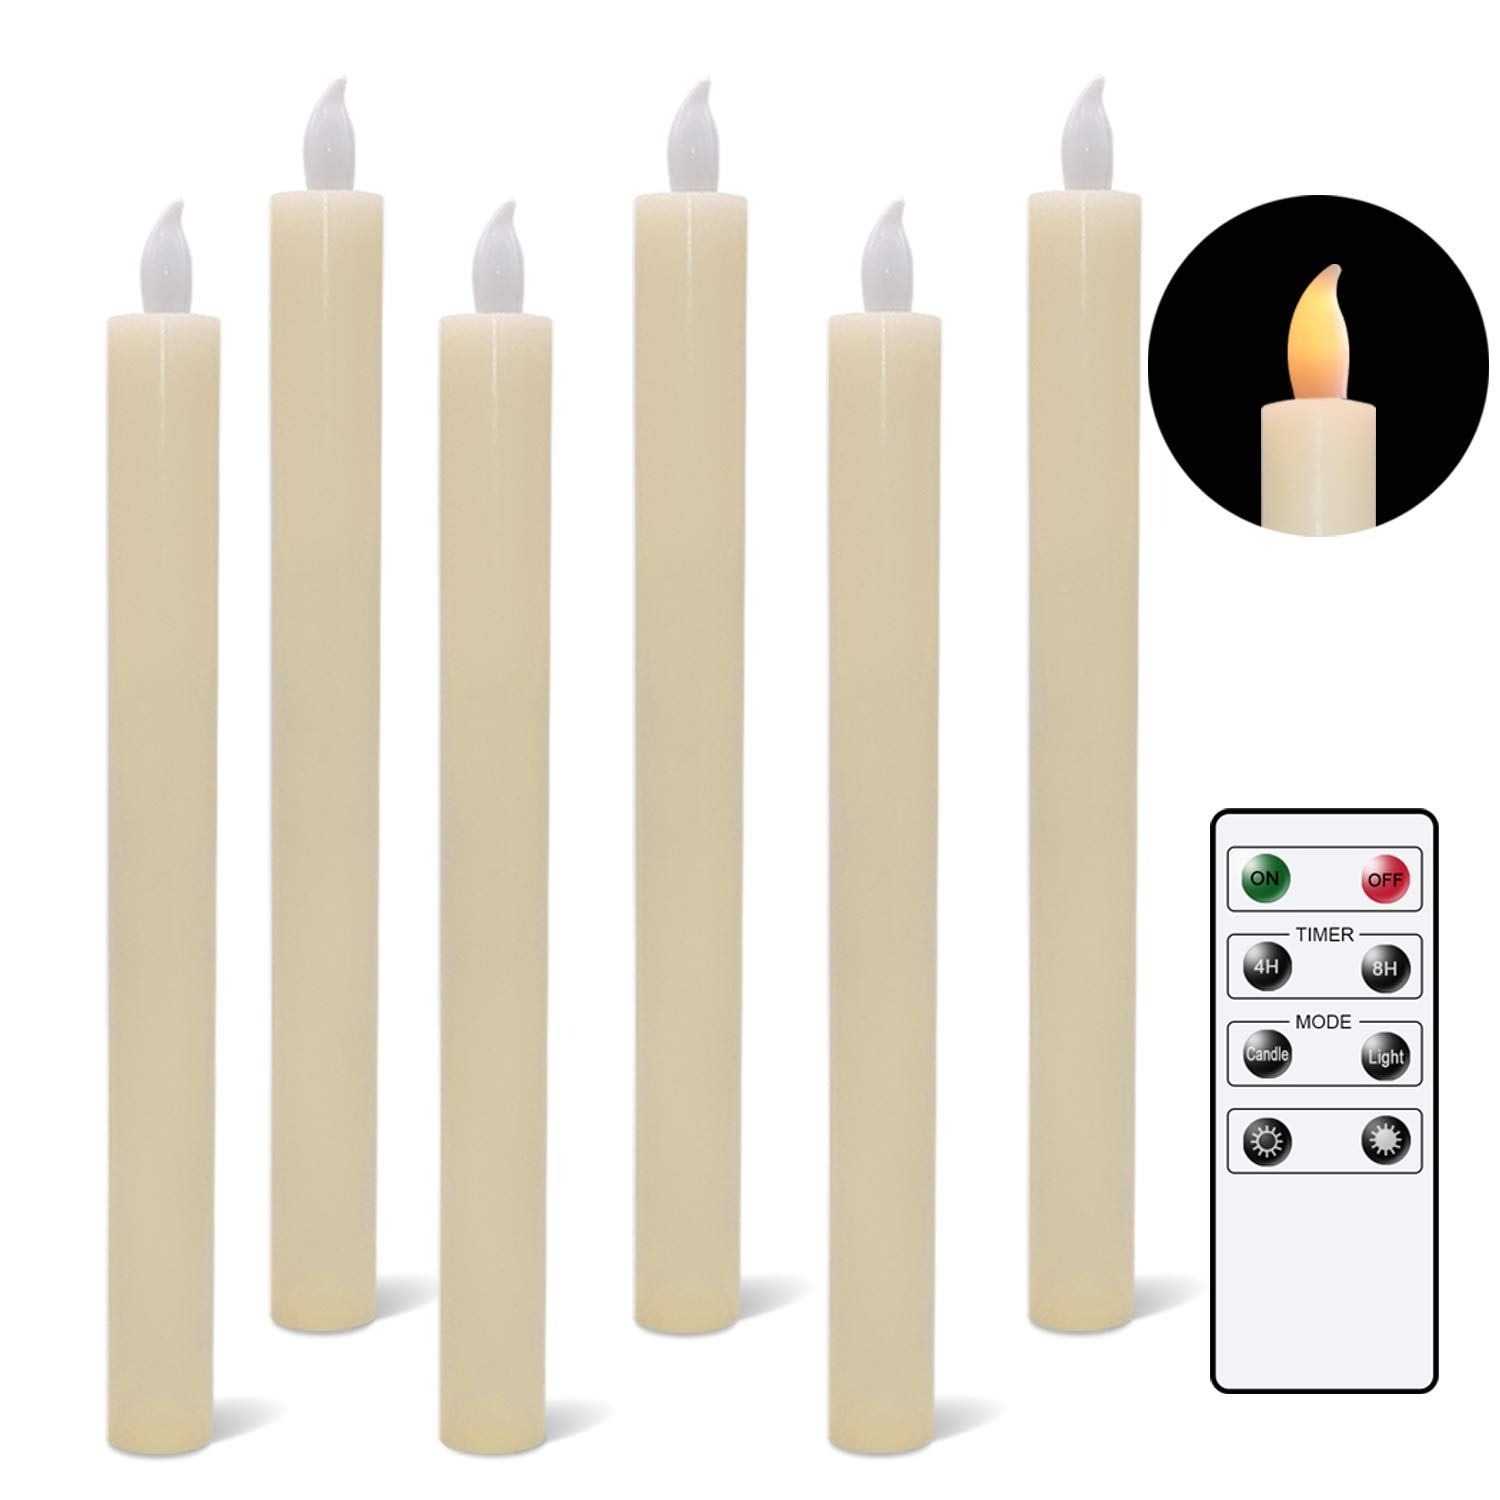 Flameless Flickering Taper Candles, LED Taper Candles Battery Operated Windows Candlesticks Ivory with Remote and Timer Pack of 6 Real Wax Home Wedding Party Decoration Light